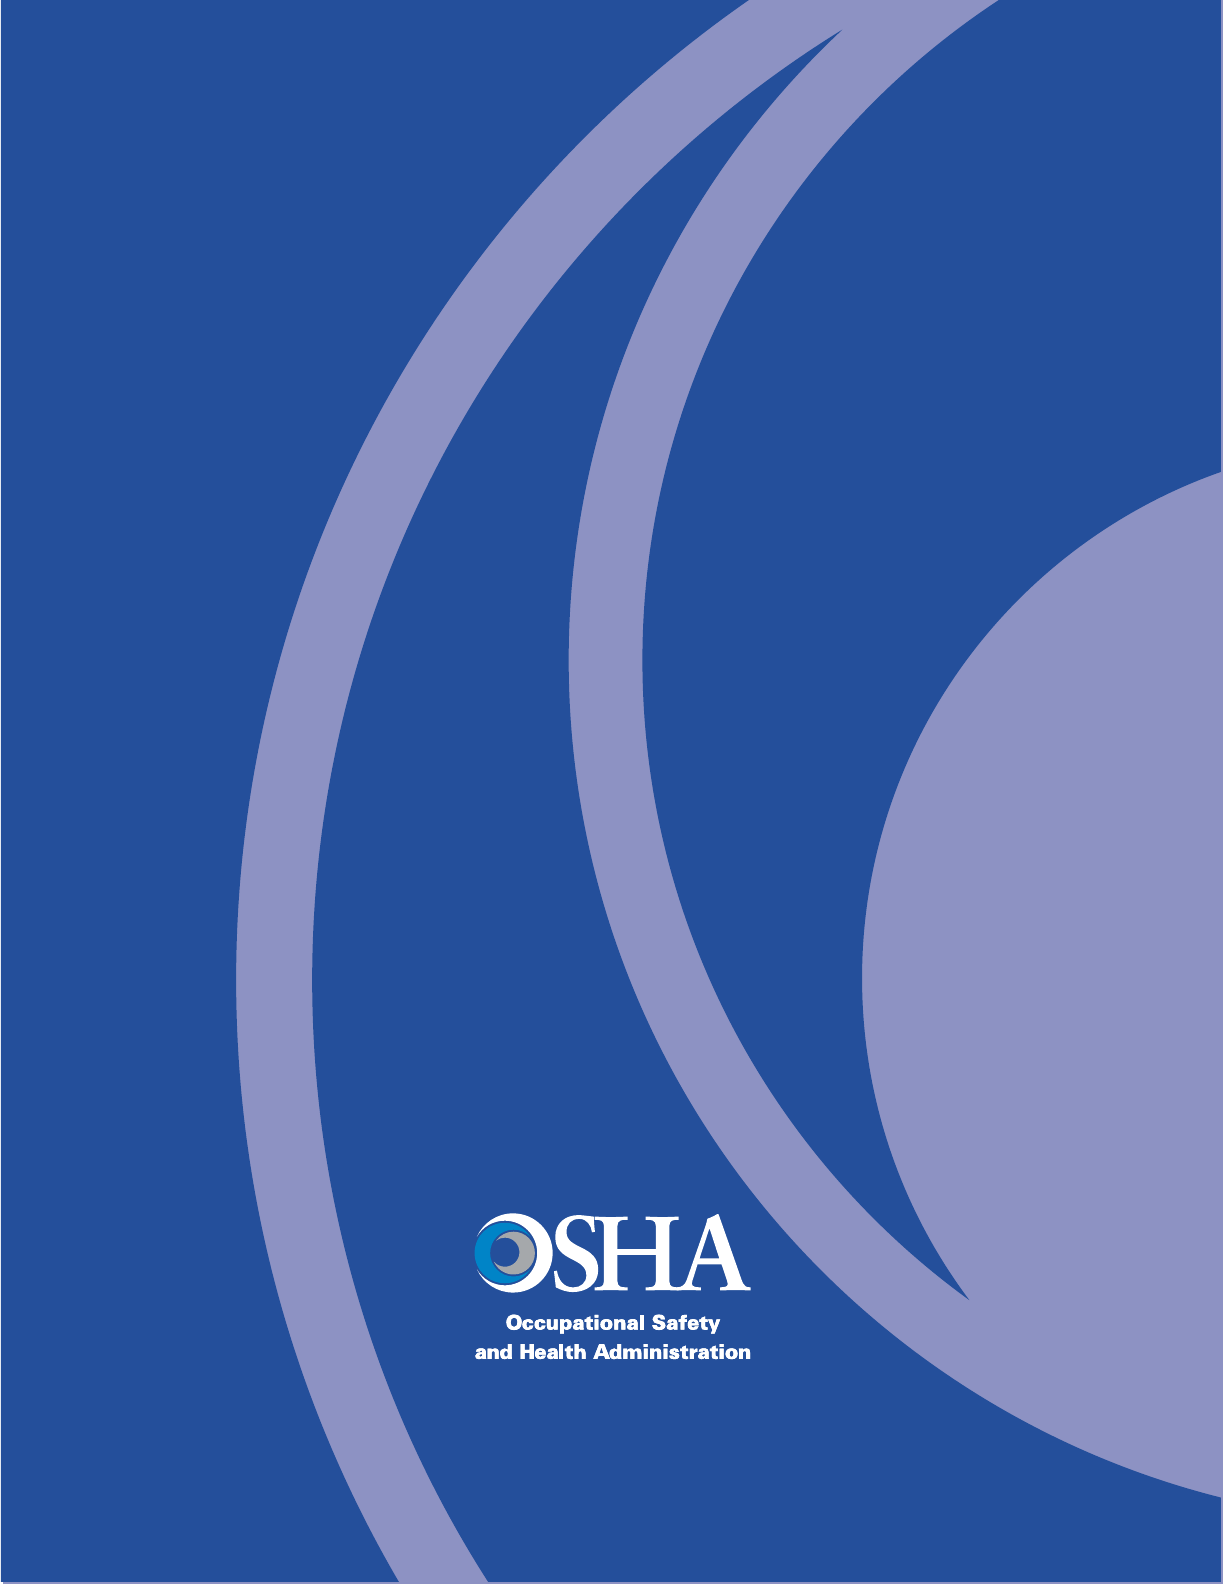 osha strategic management plan The osha strategic management plan for 2003-2008 was a management tool that outlined osha's ongoing process to evaluate, control, and reduce more essay examples on strategic management rubric osha management strongly believed that through the use of enforcement, compliance.